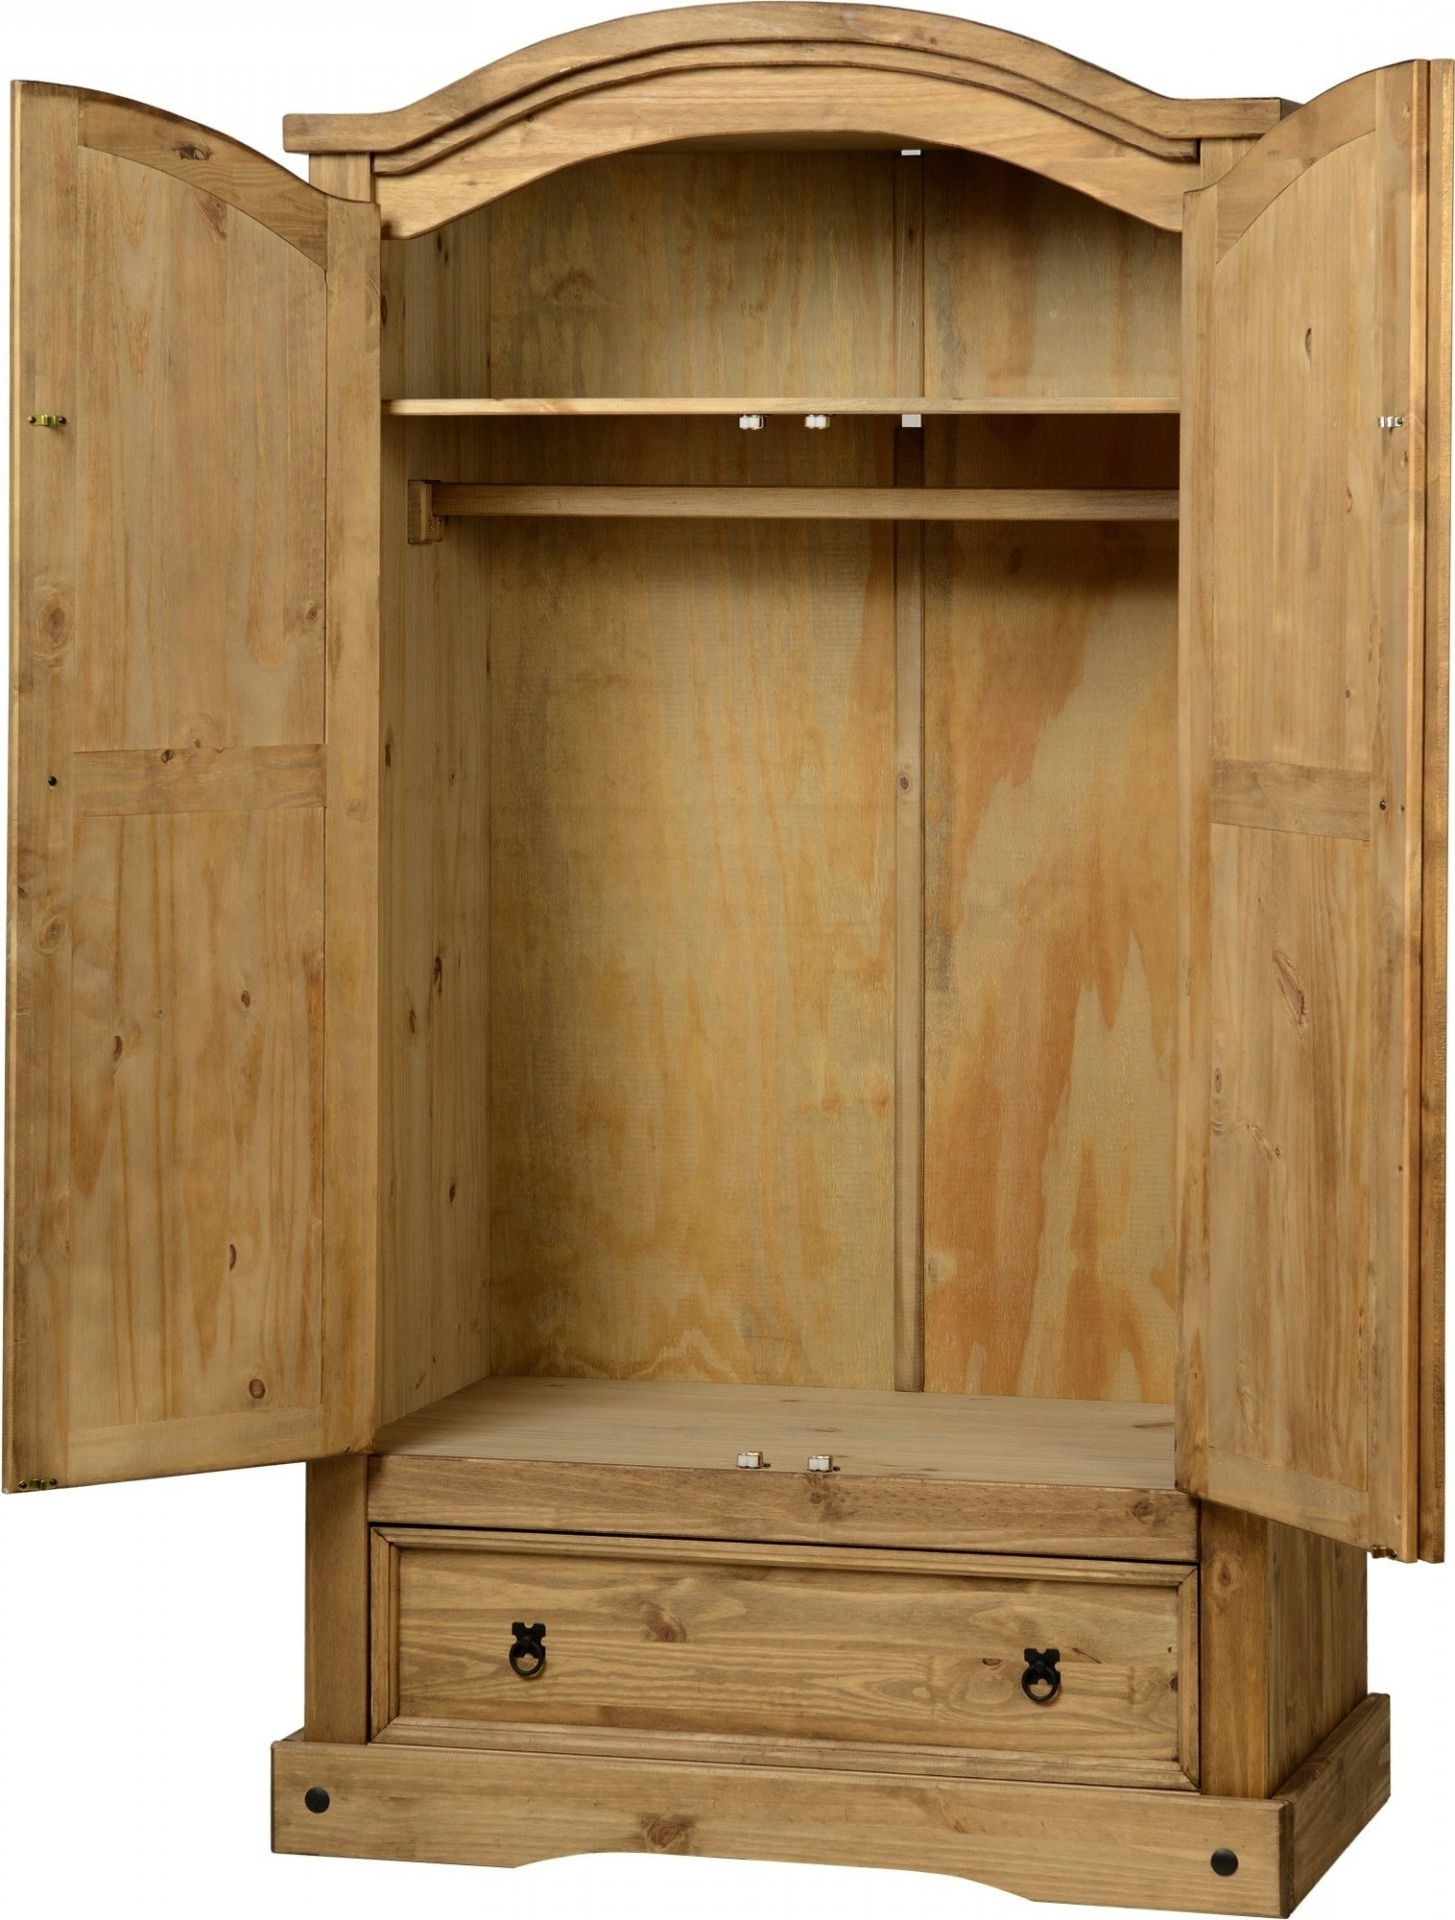 2017 Pine Wardrobes With Drawers And Shelves With Corona Pine 2 Door Wardrobe With Drawer – Default Store View (View 2 of 15)